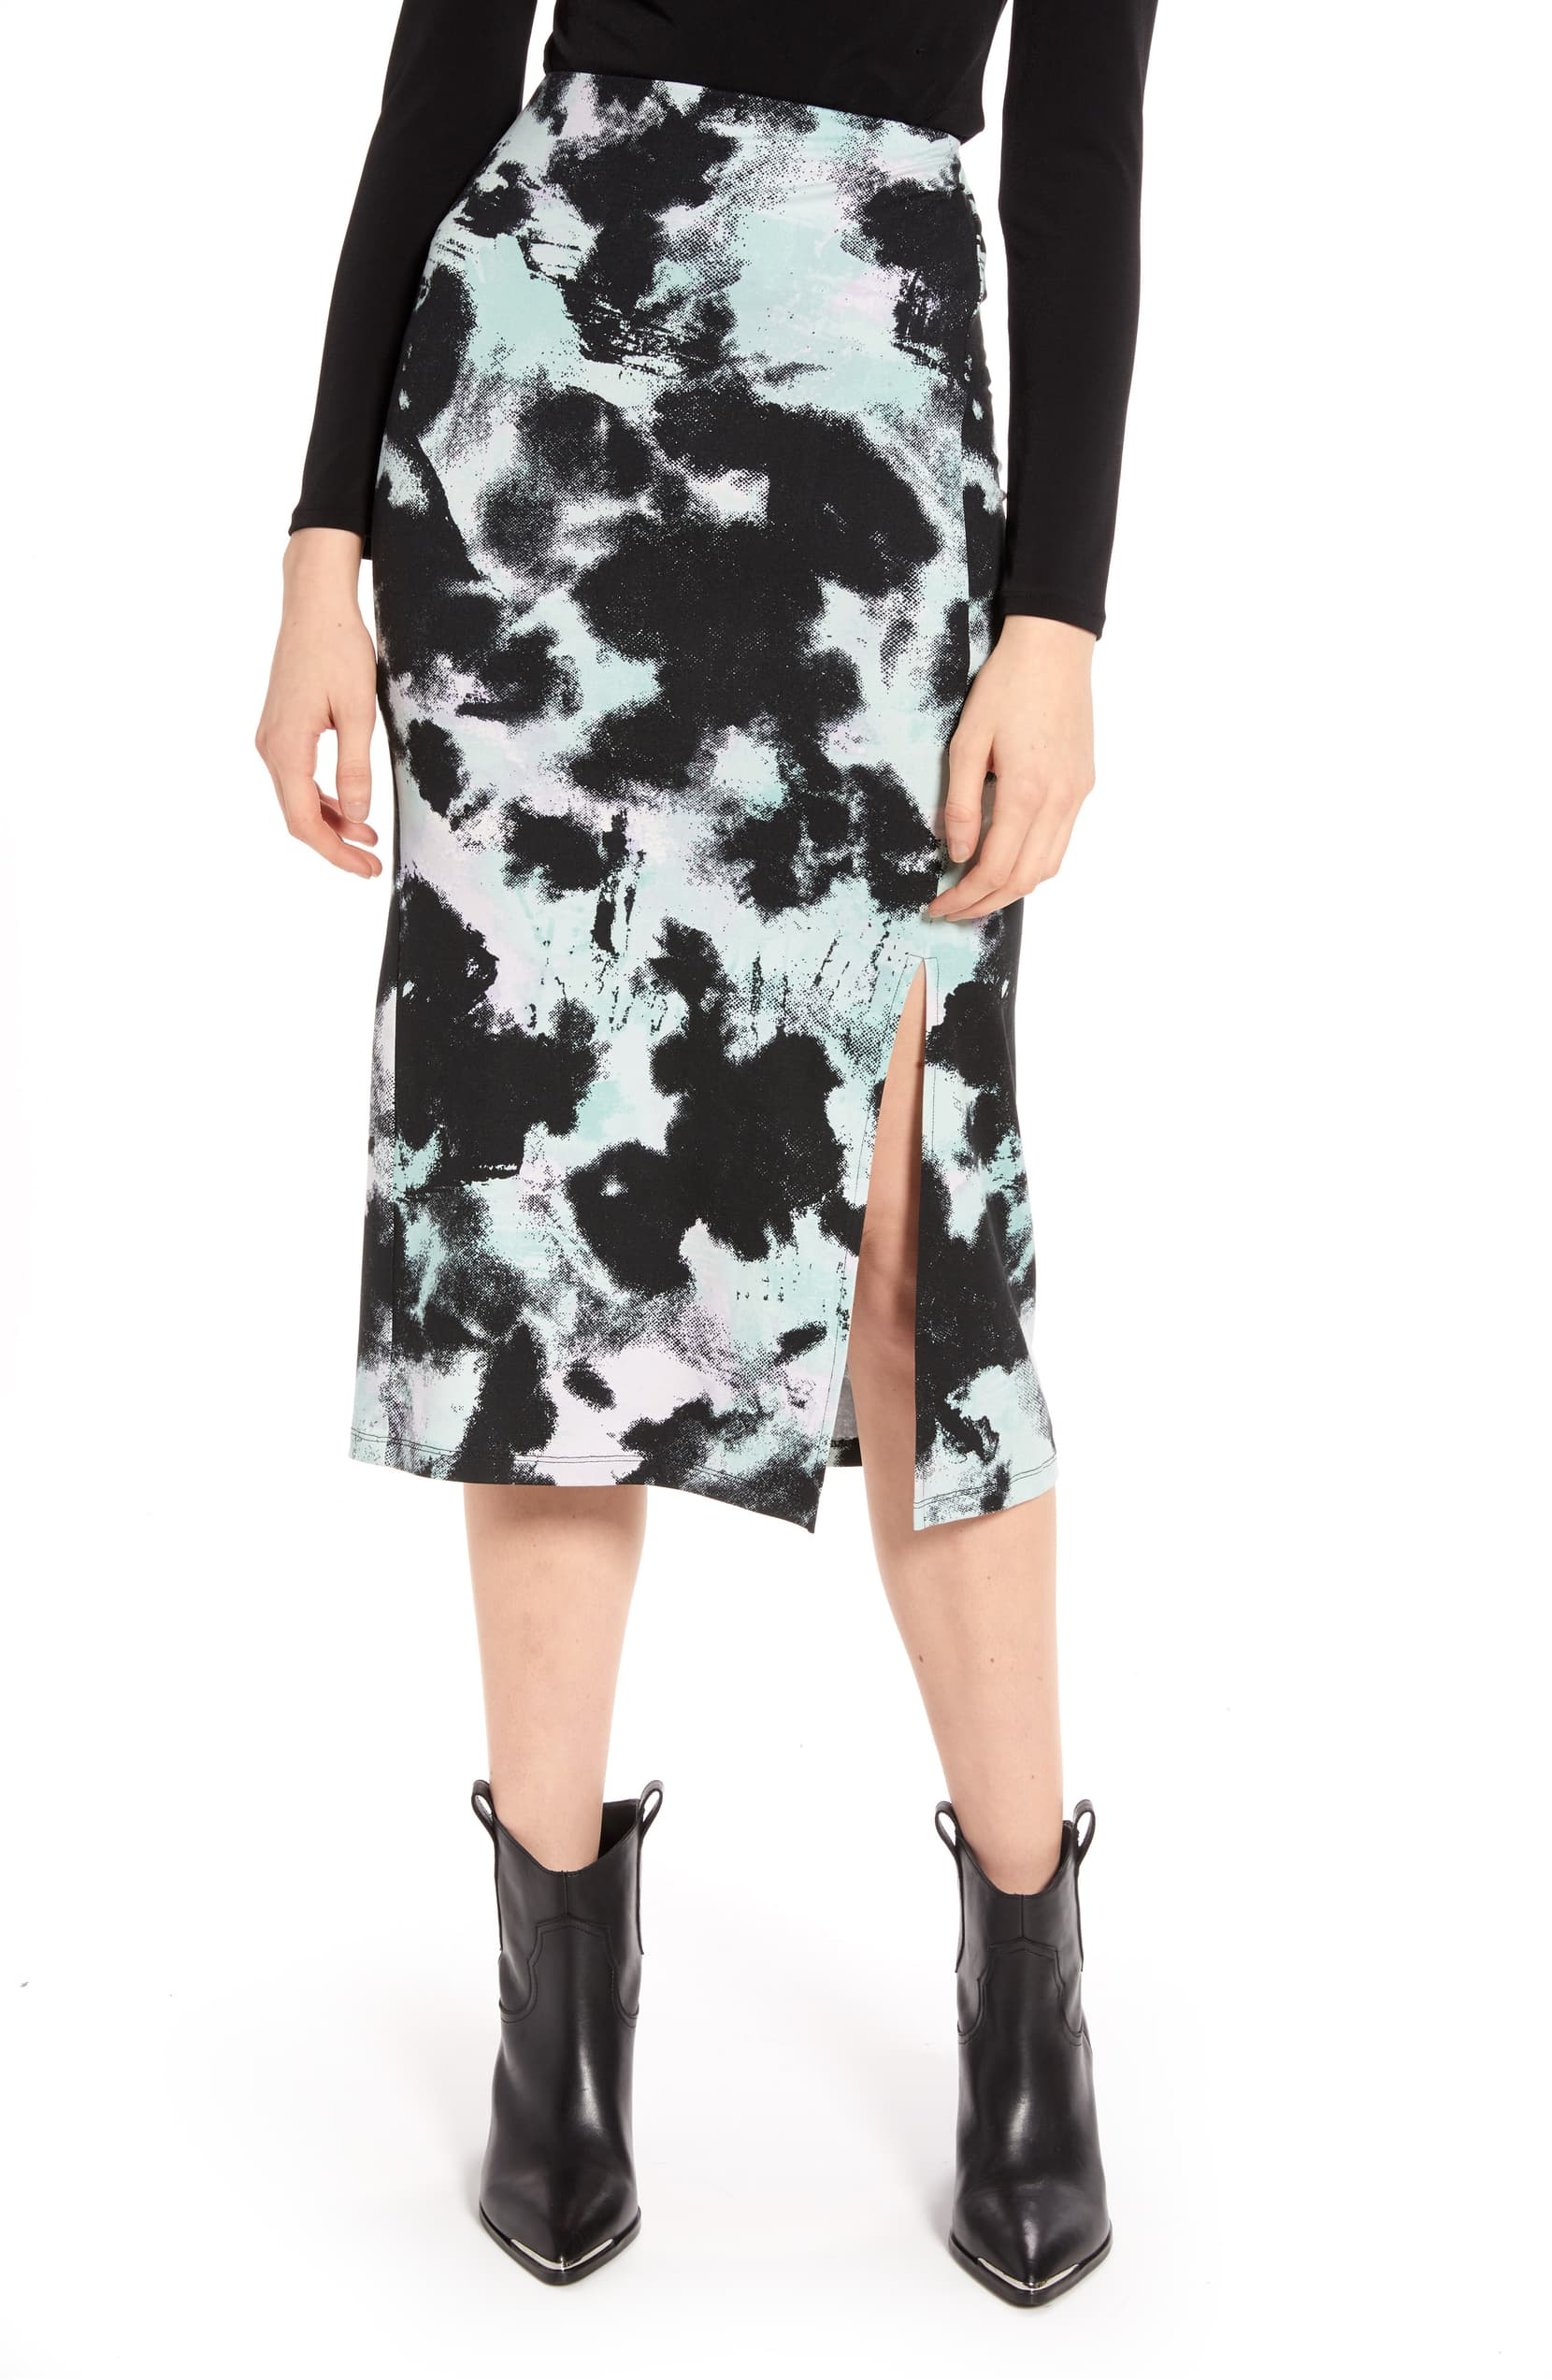 Liven up your look in this easy knit midi patterned in a vibrant tie-dye-inspired print. Shop it{ }- $49. (Image: Nordstrom){ }